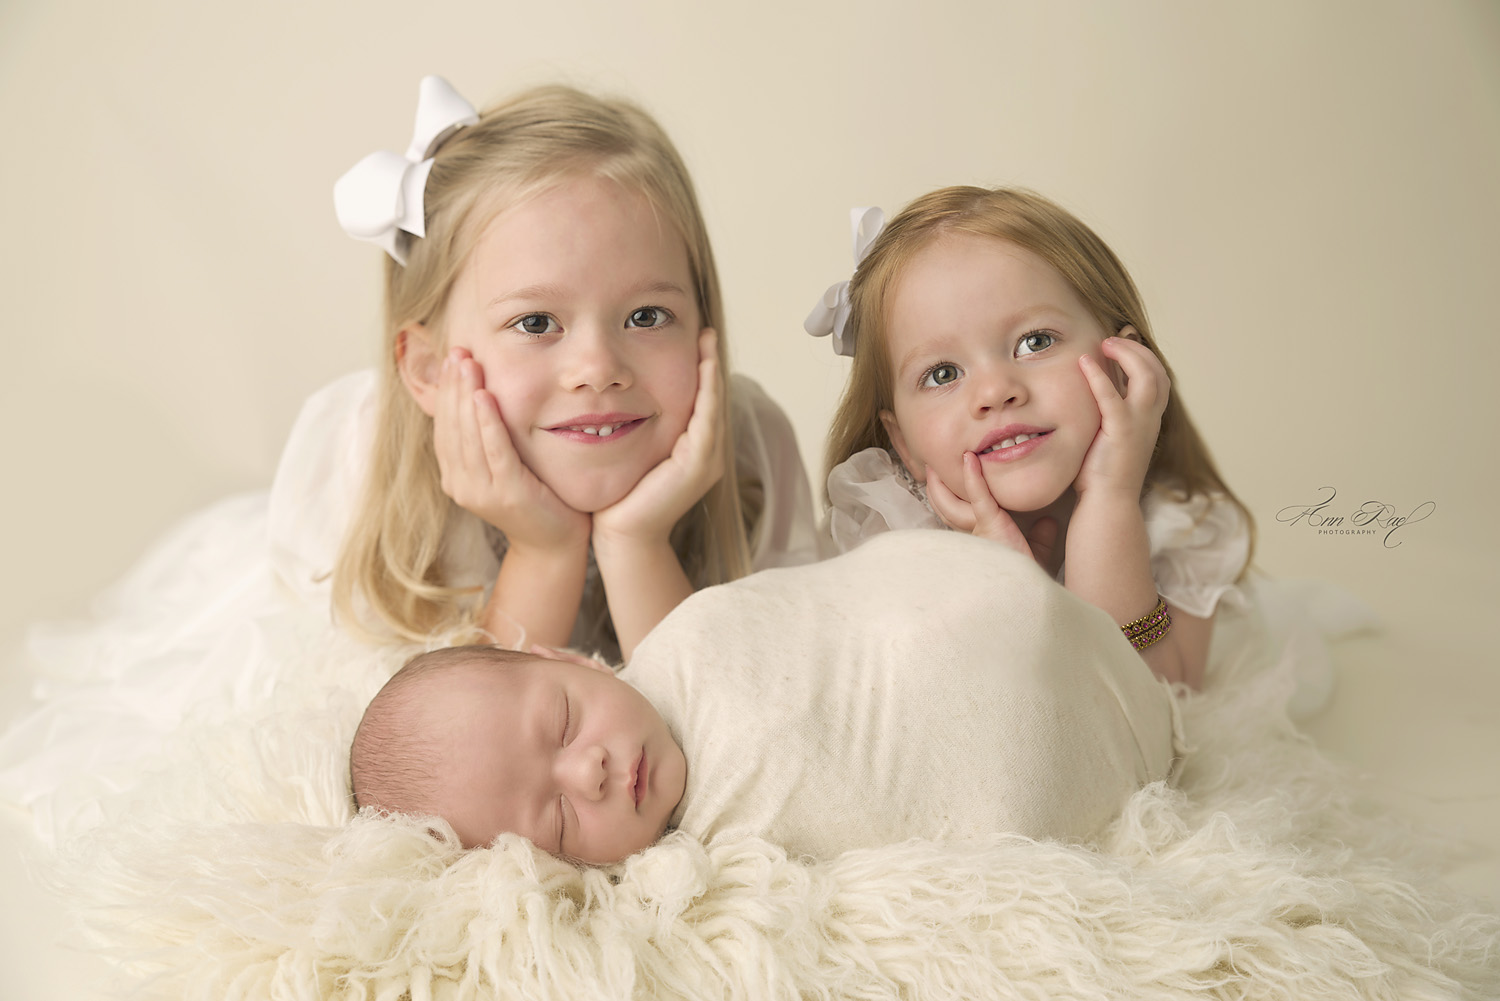 St. Louis Photographer with newborn baby and siblings